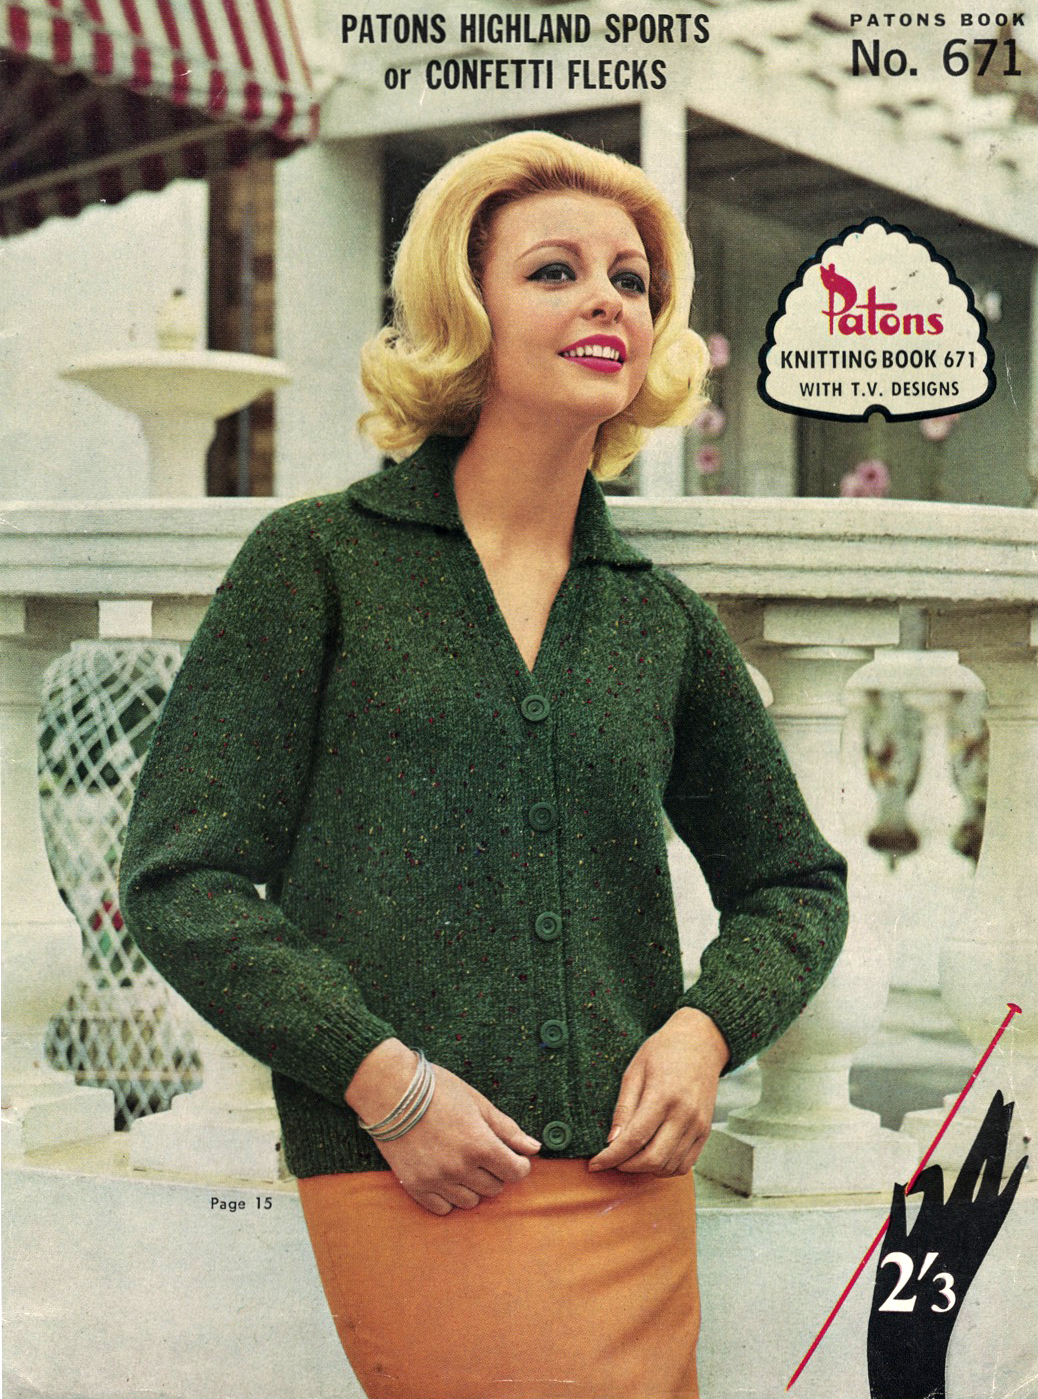 The Vintage Pattern Files: 1950s Knitting - Patons Book No.671